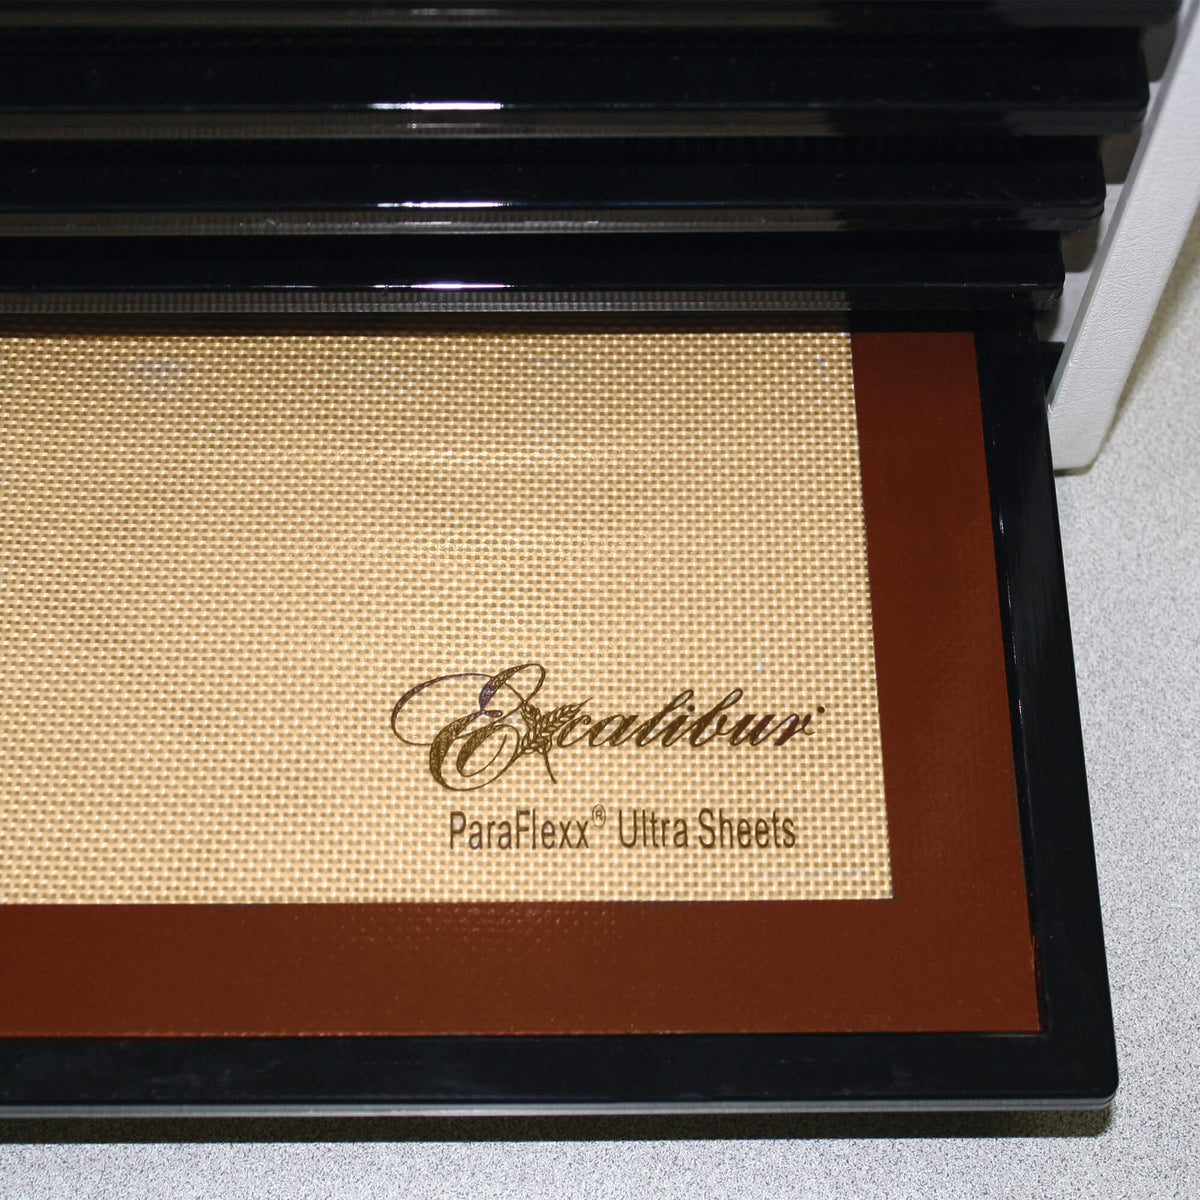 Excalibur Paraflexx Ultra silicone dehydrator drying sheet on a tray.